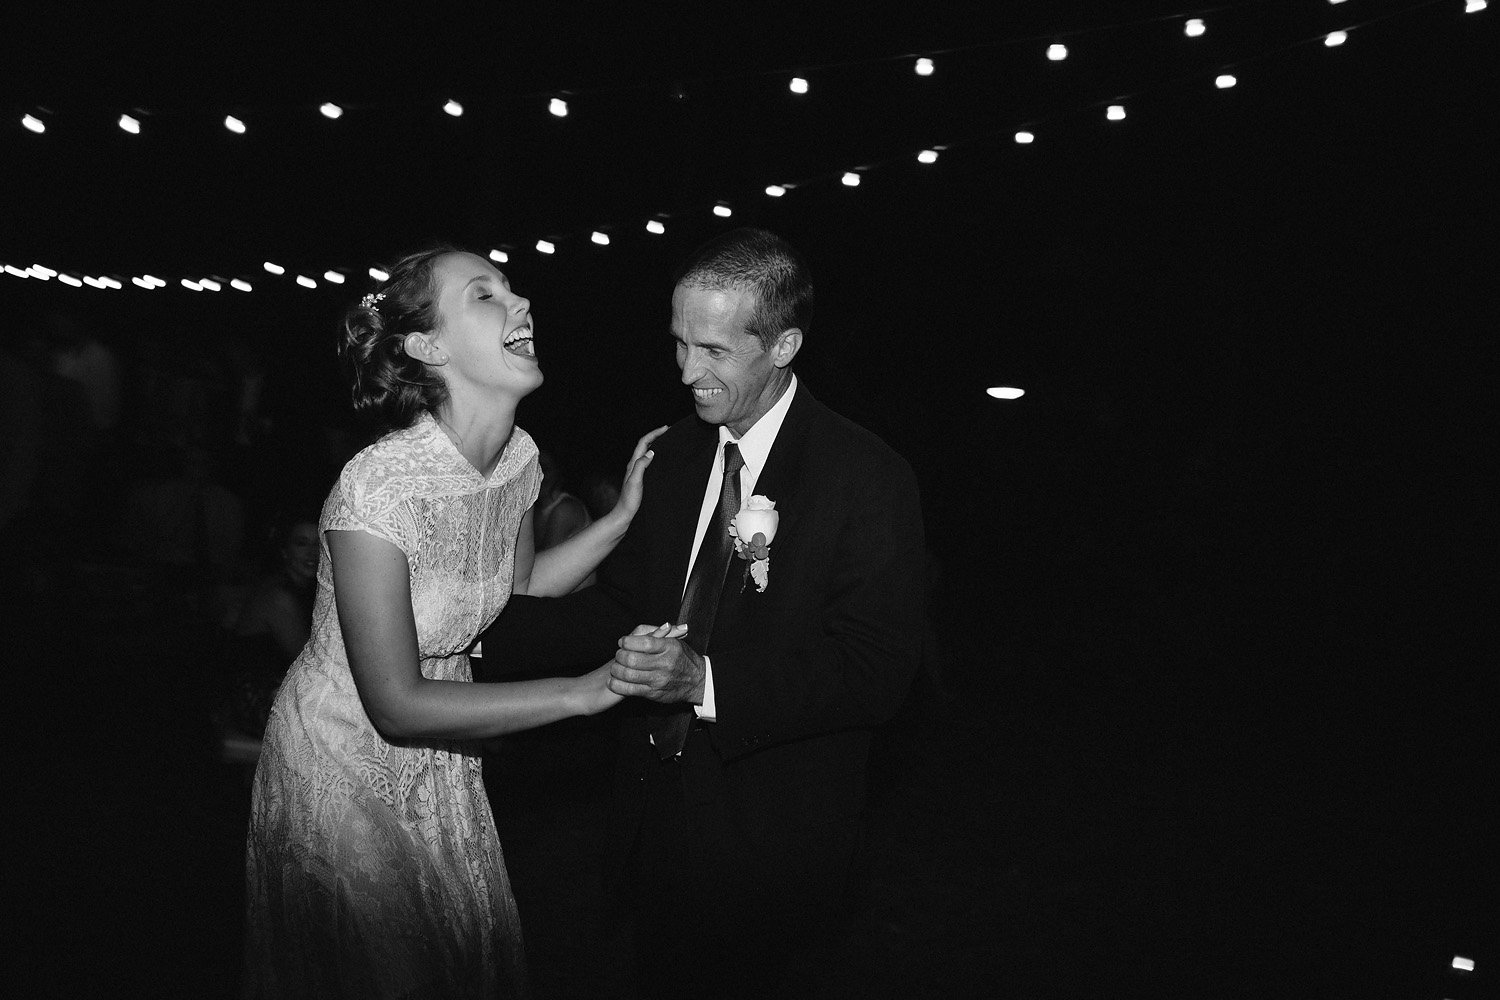 Fun father daughter dance at wedding